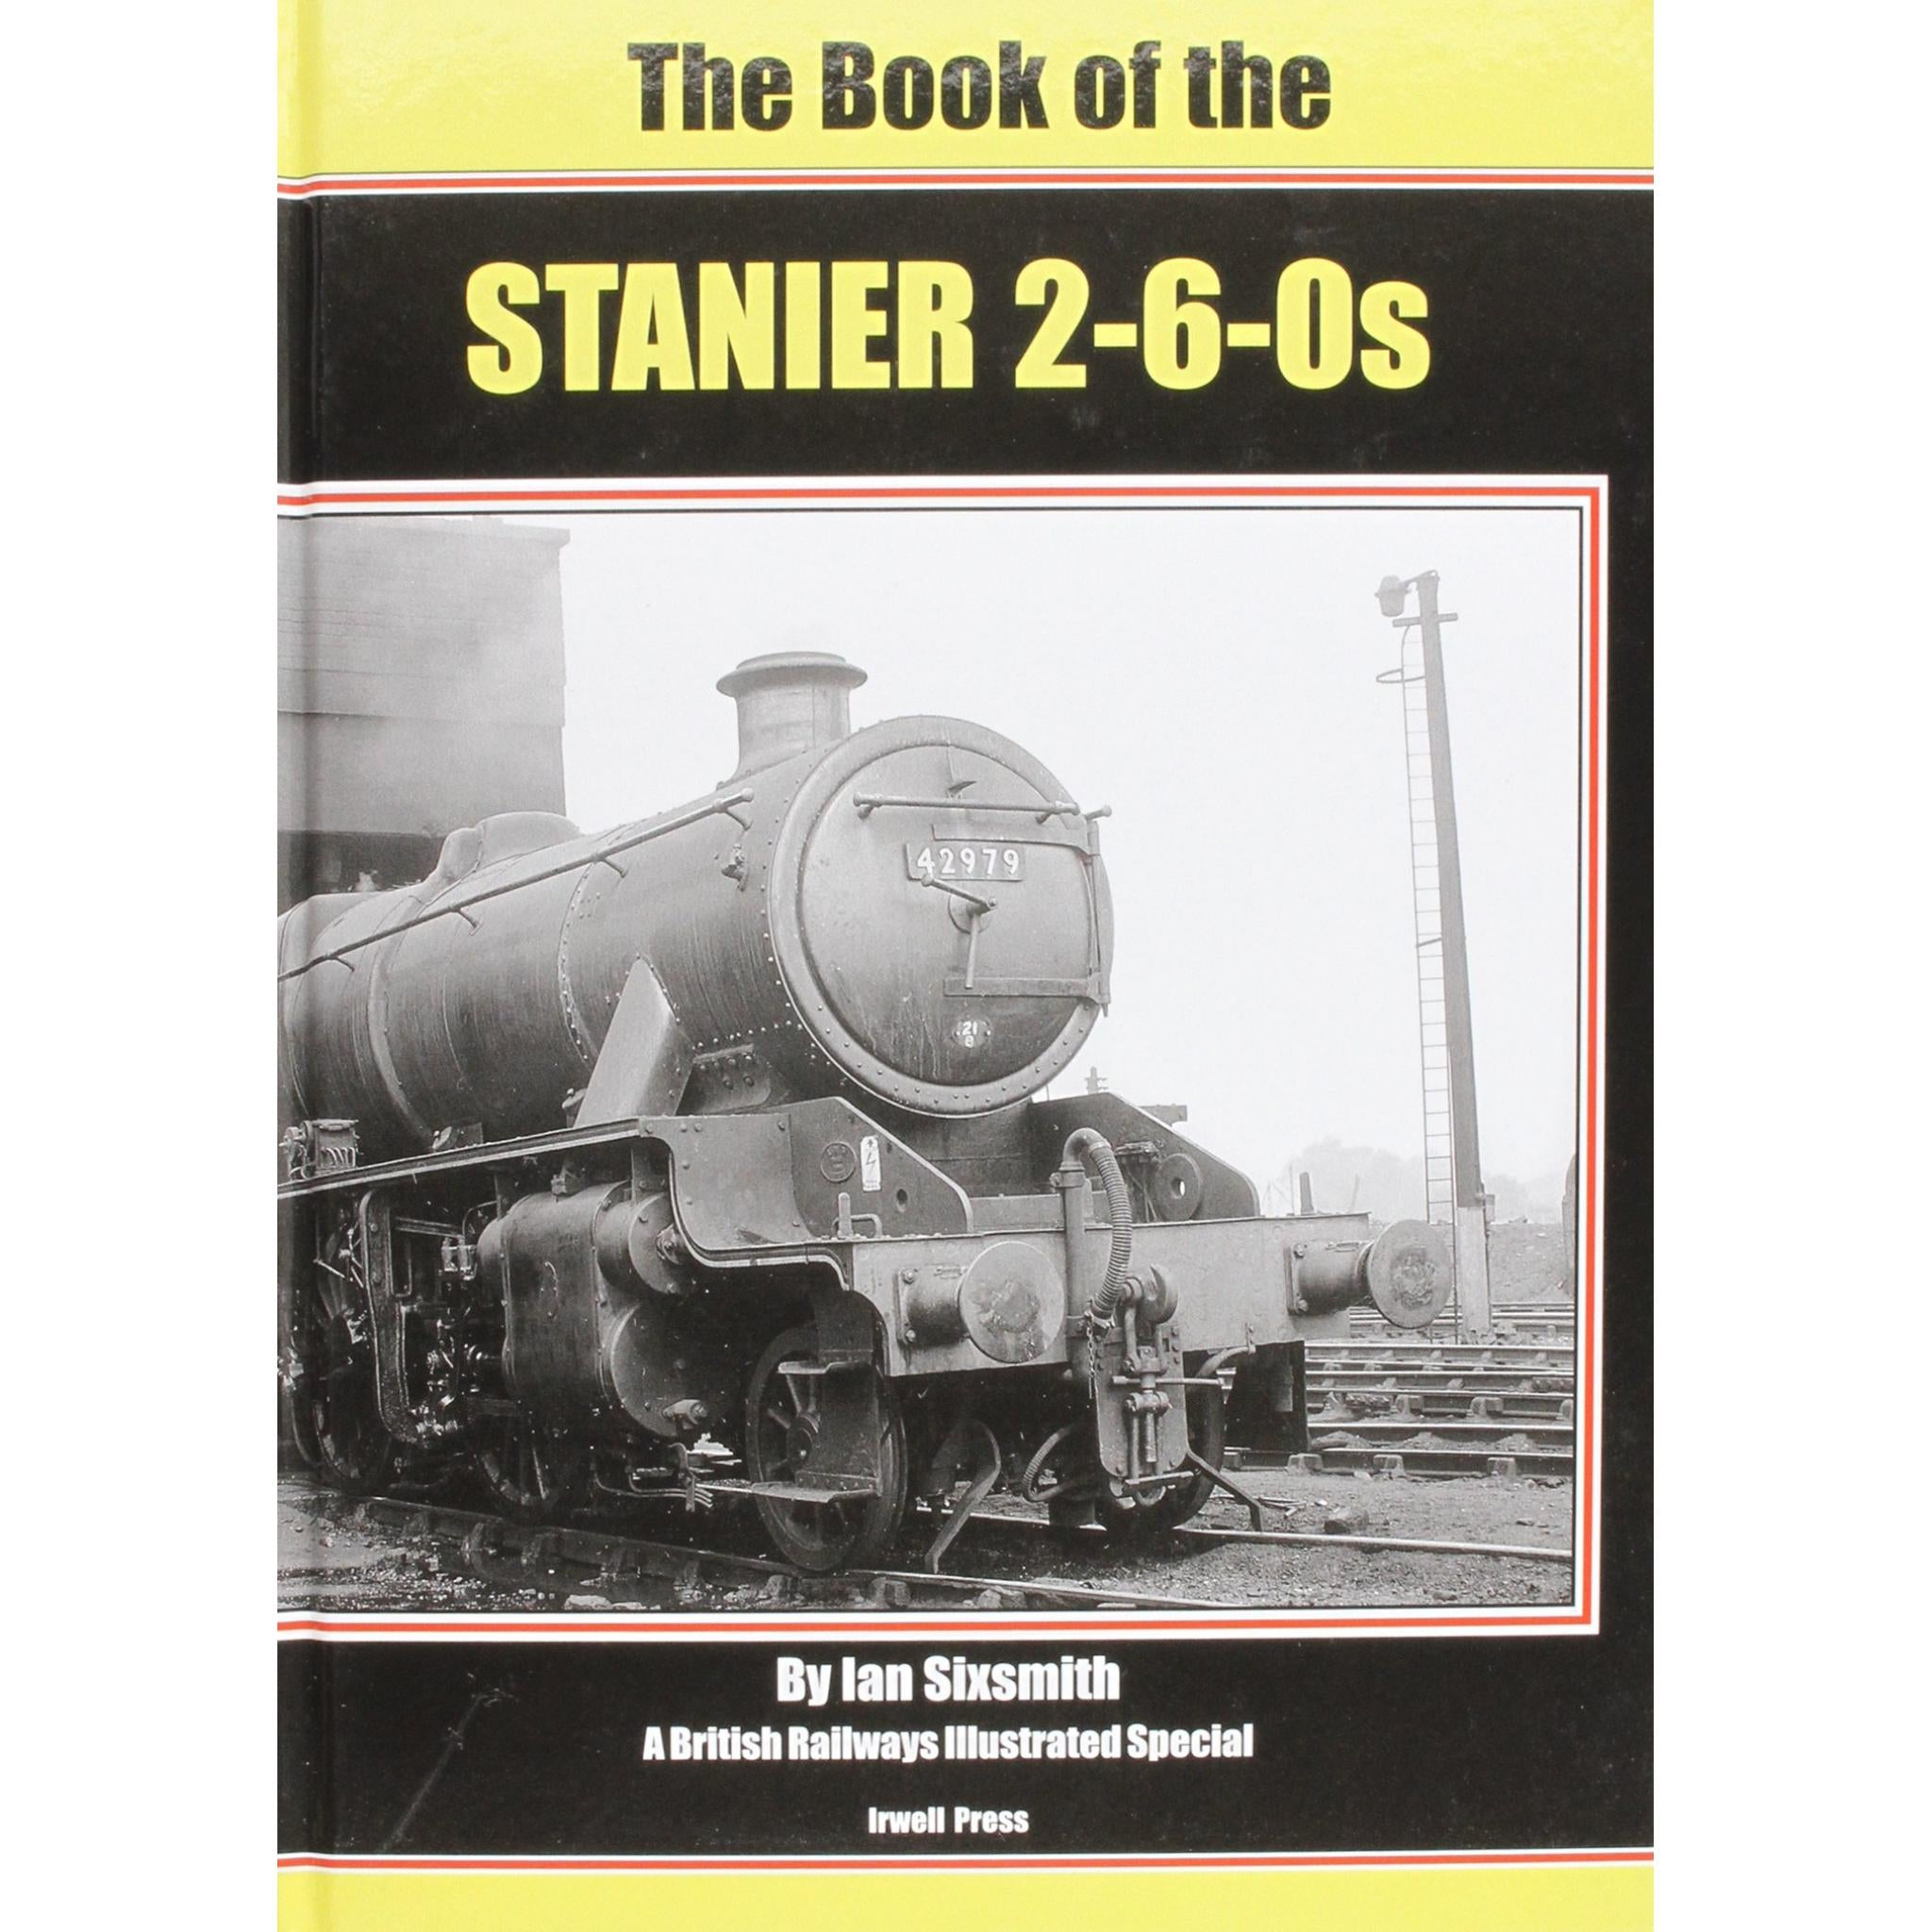 The Book of the STANIER 2-6-0s (ALMOST OUT OF PRINT BE QUICK)